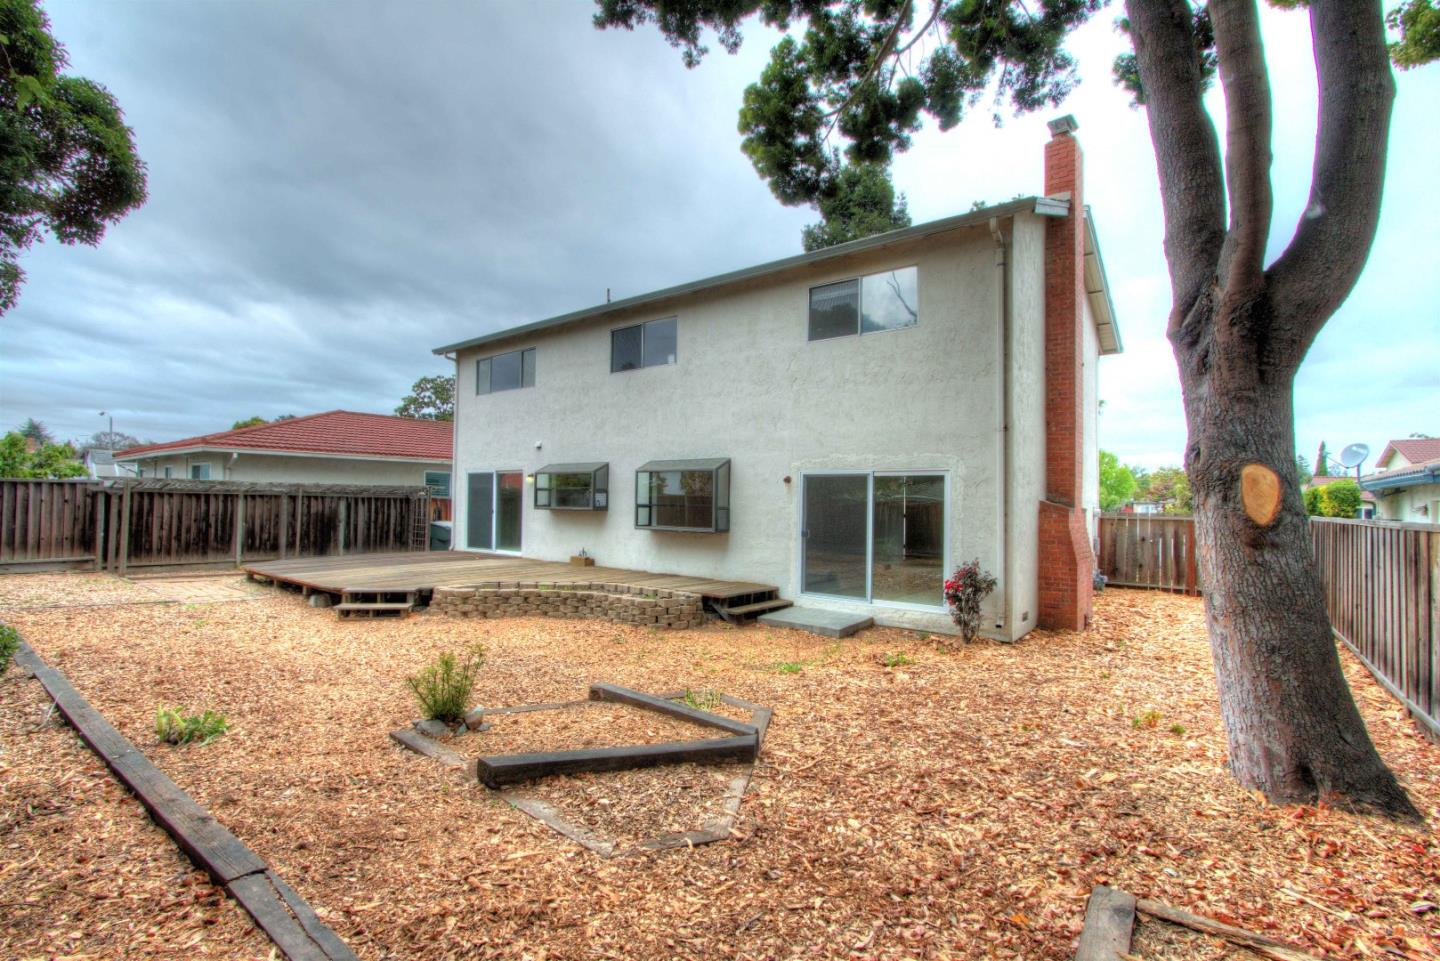 Additional photo for property listing at 448 Palo Verde Dr  SUNNYVALE, CALIFORNIA 94086